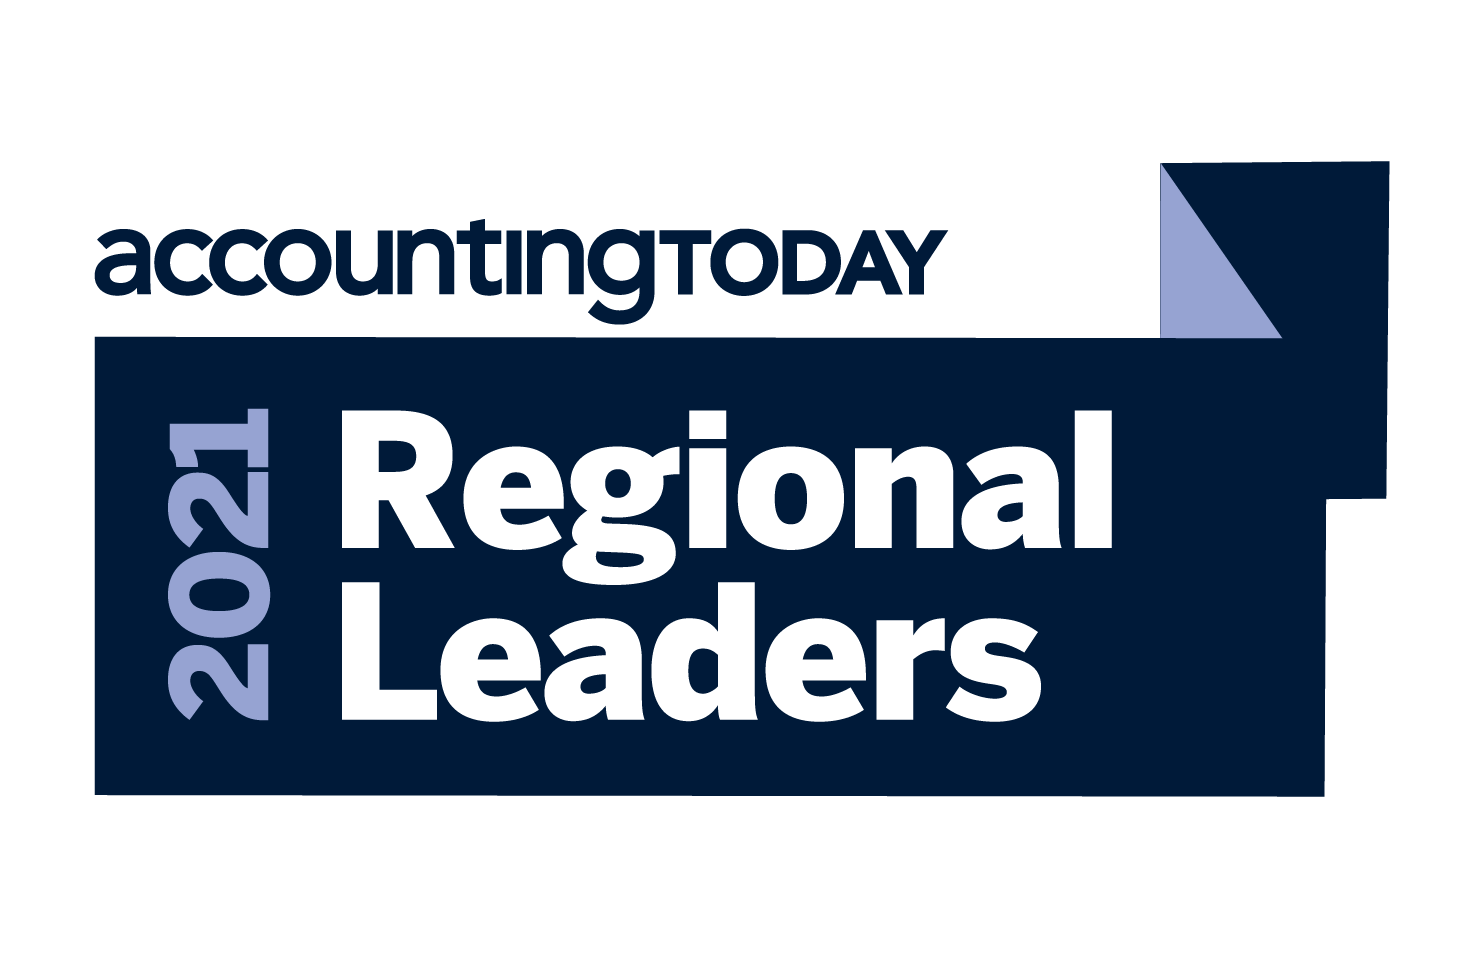 accounting today 2021 regional leaders title